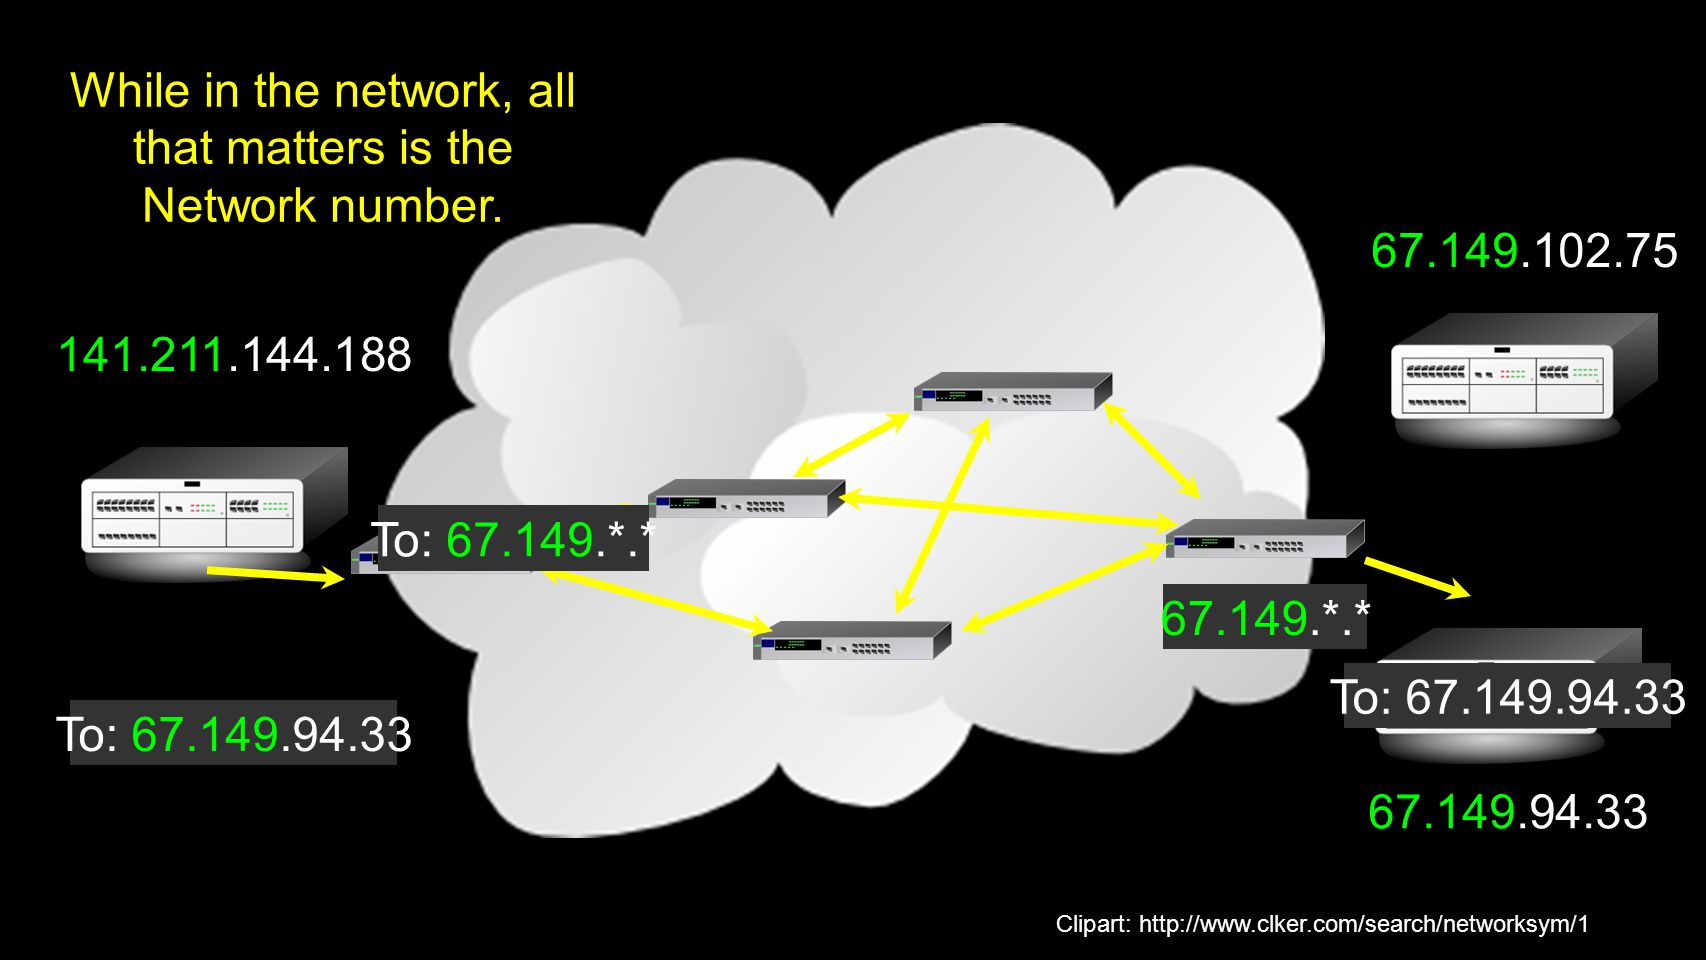 While in the network, all that matters is the Network number.